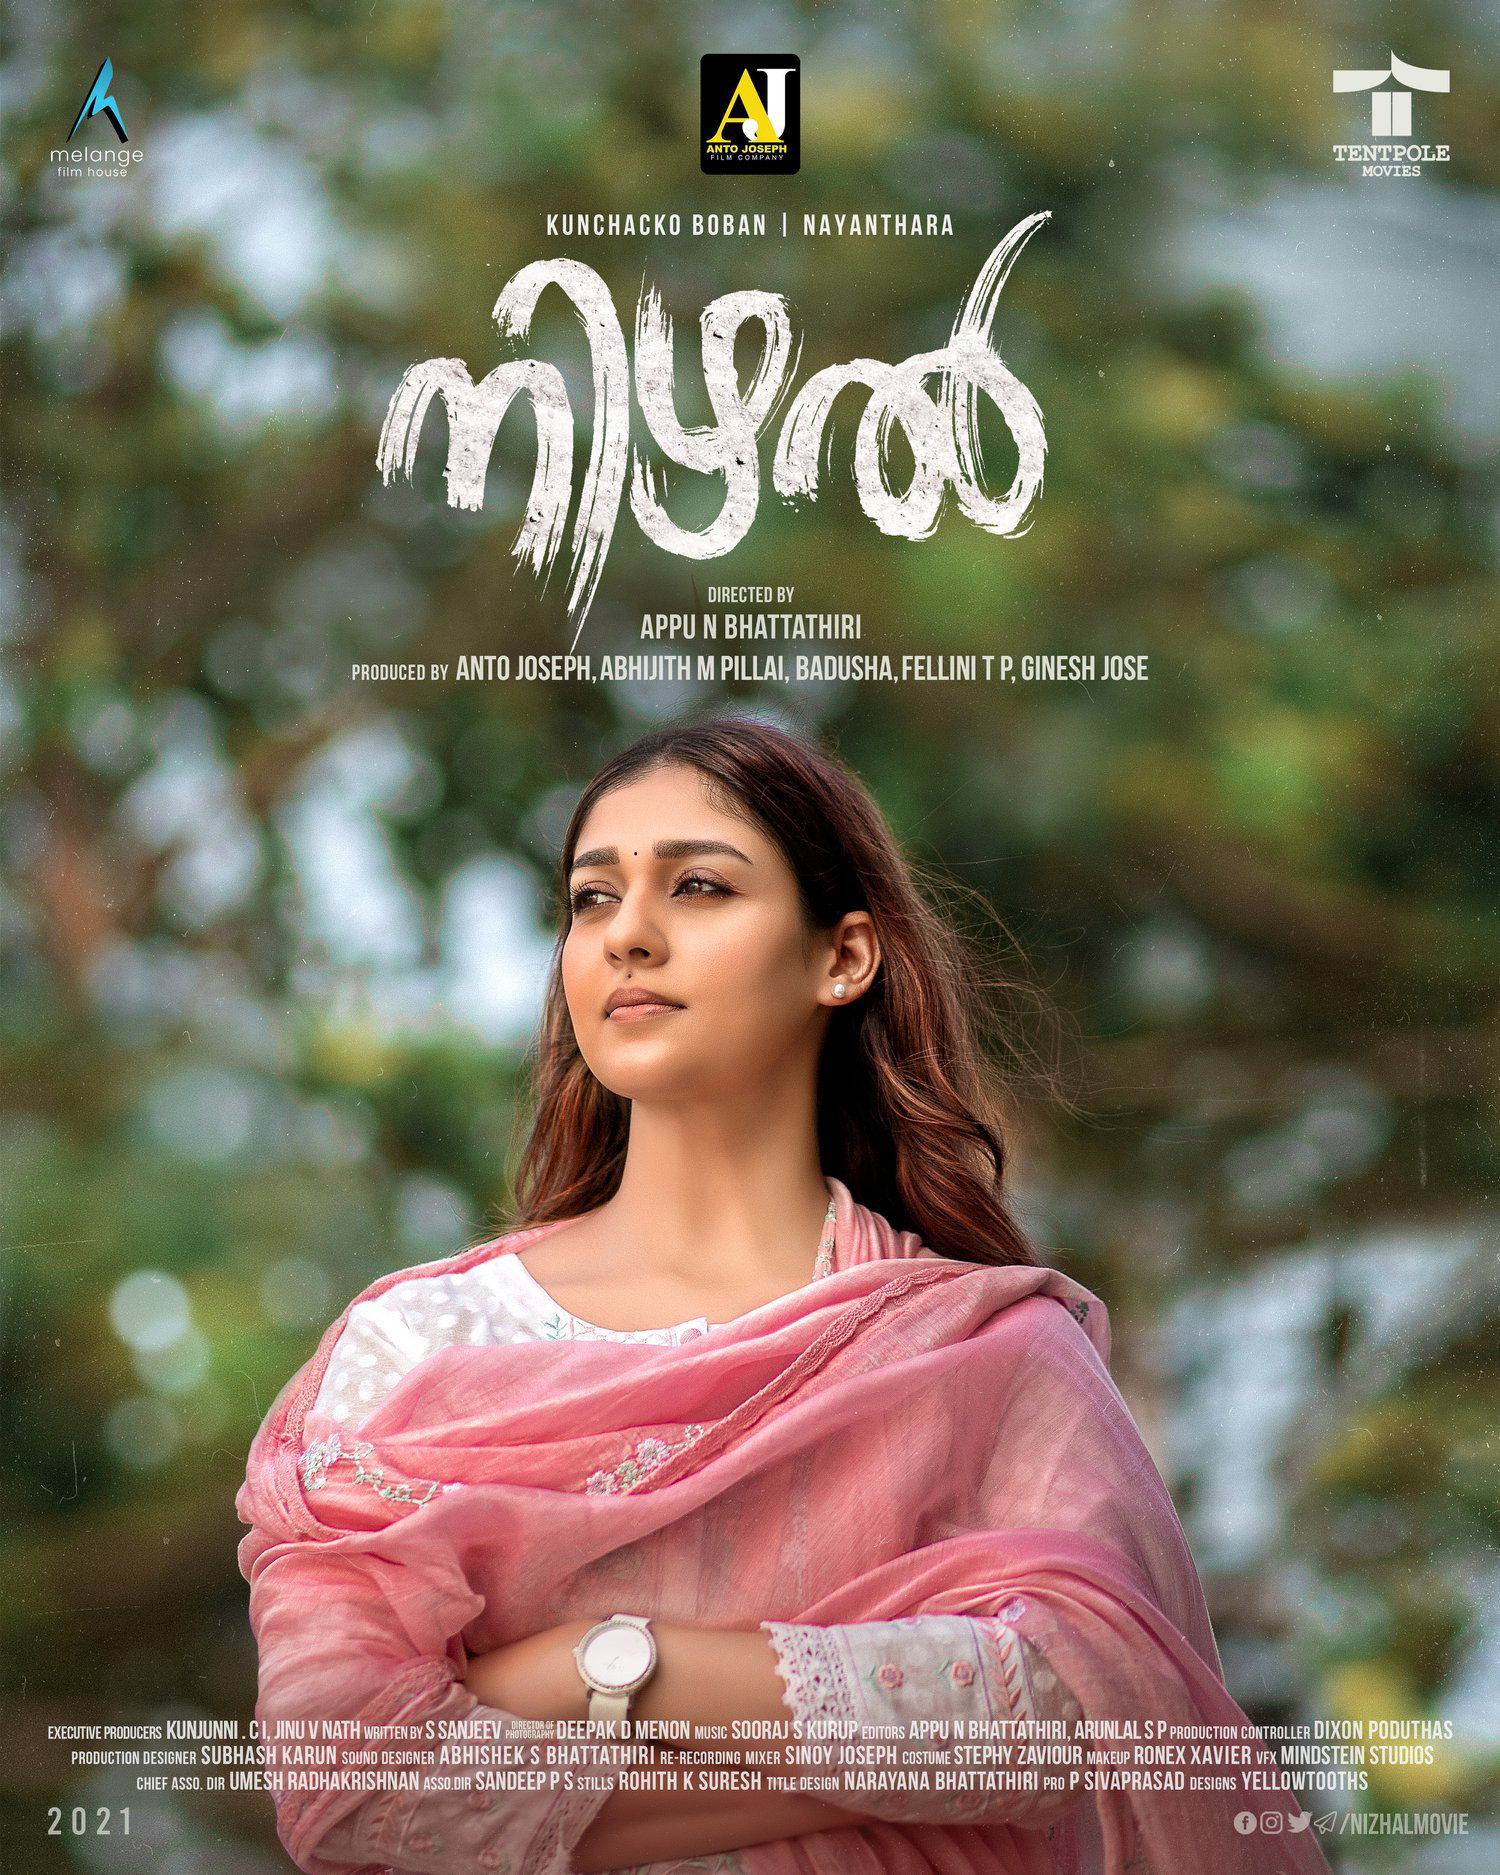 Nizhal malayalam movie,Nizhal movie,nayanthara,nayanthara new malayalam movie,nayanthara in Nizhal,nayanthara new movie stills,nayanthara latest pics,kunchacko boban,nayanthara kunchacko boban movie,new malayalam cinema,latest mollywood film news